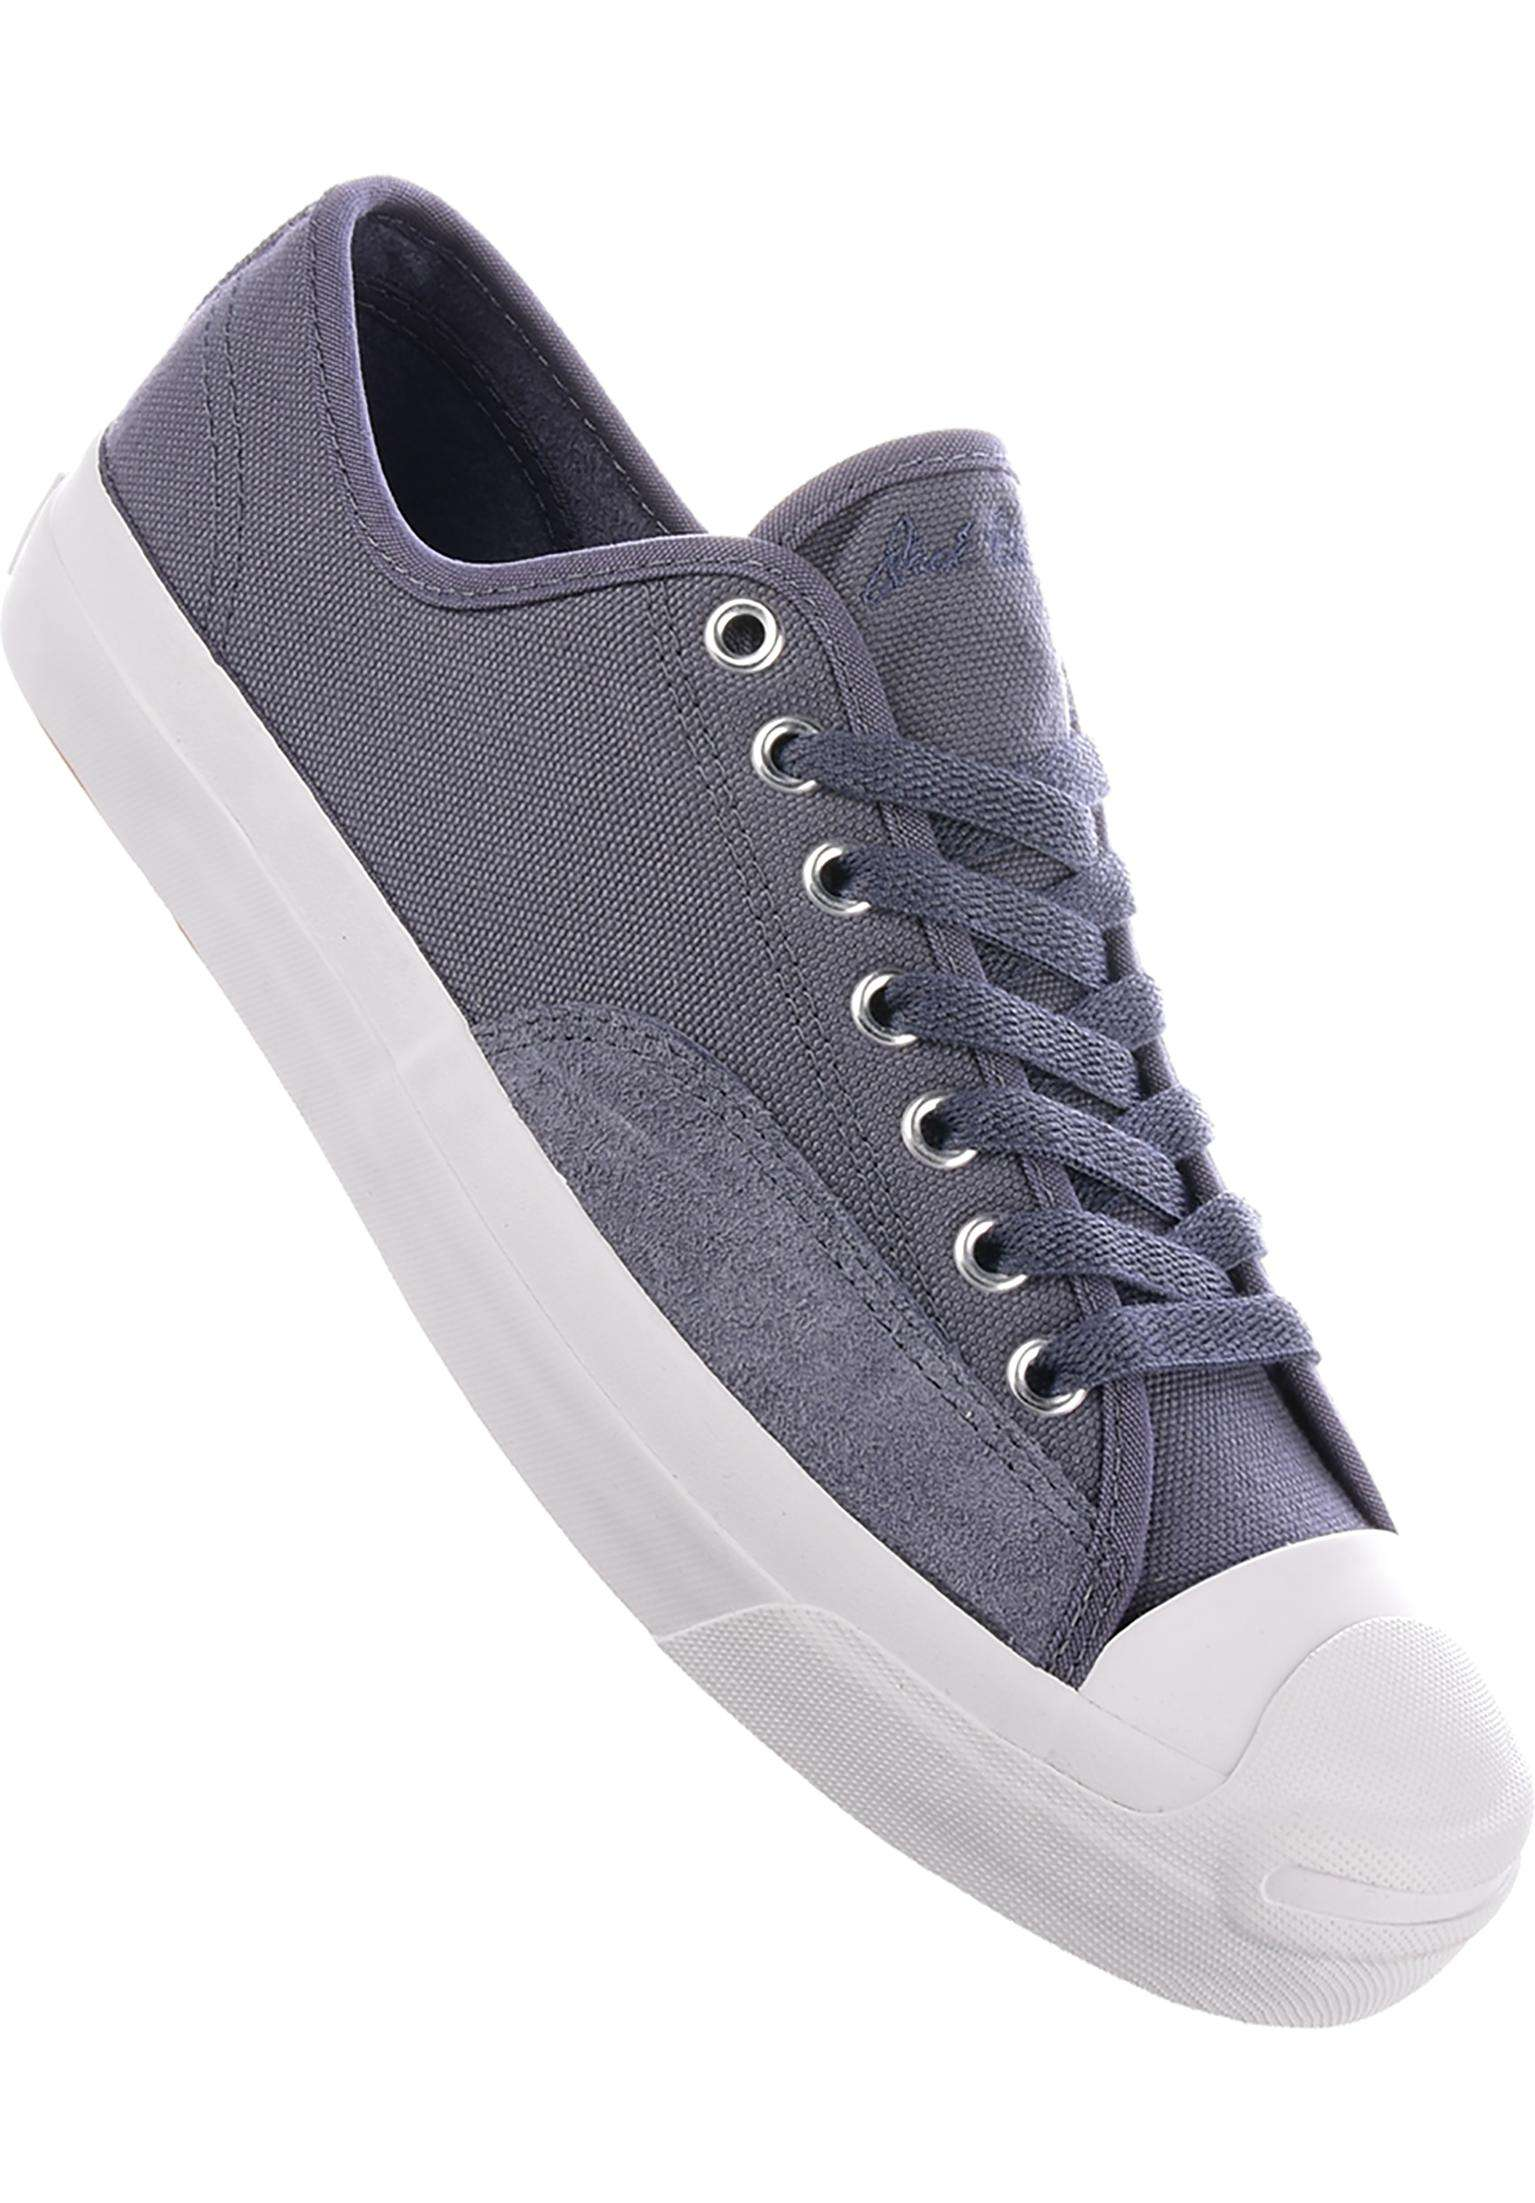 62cd51dffbbf2f Jack Purcell Pro Ox Converse CONS All Shoes in lightcarbon for Men ...